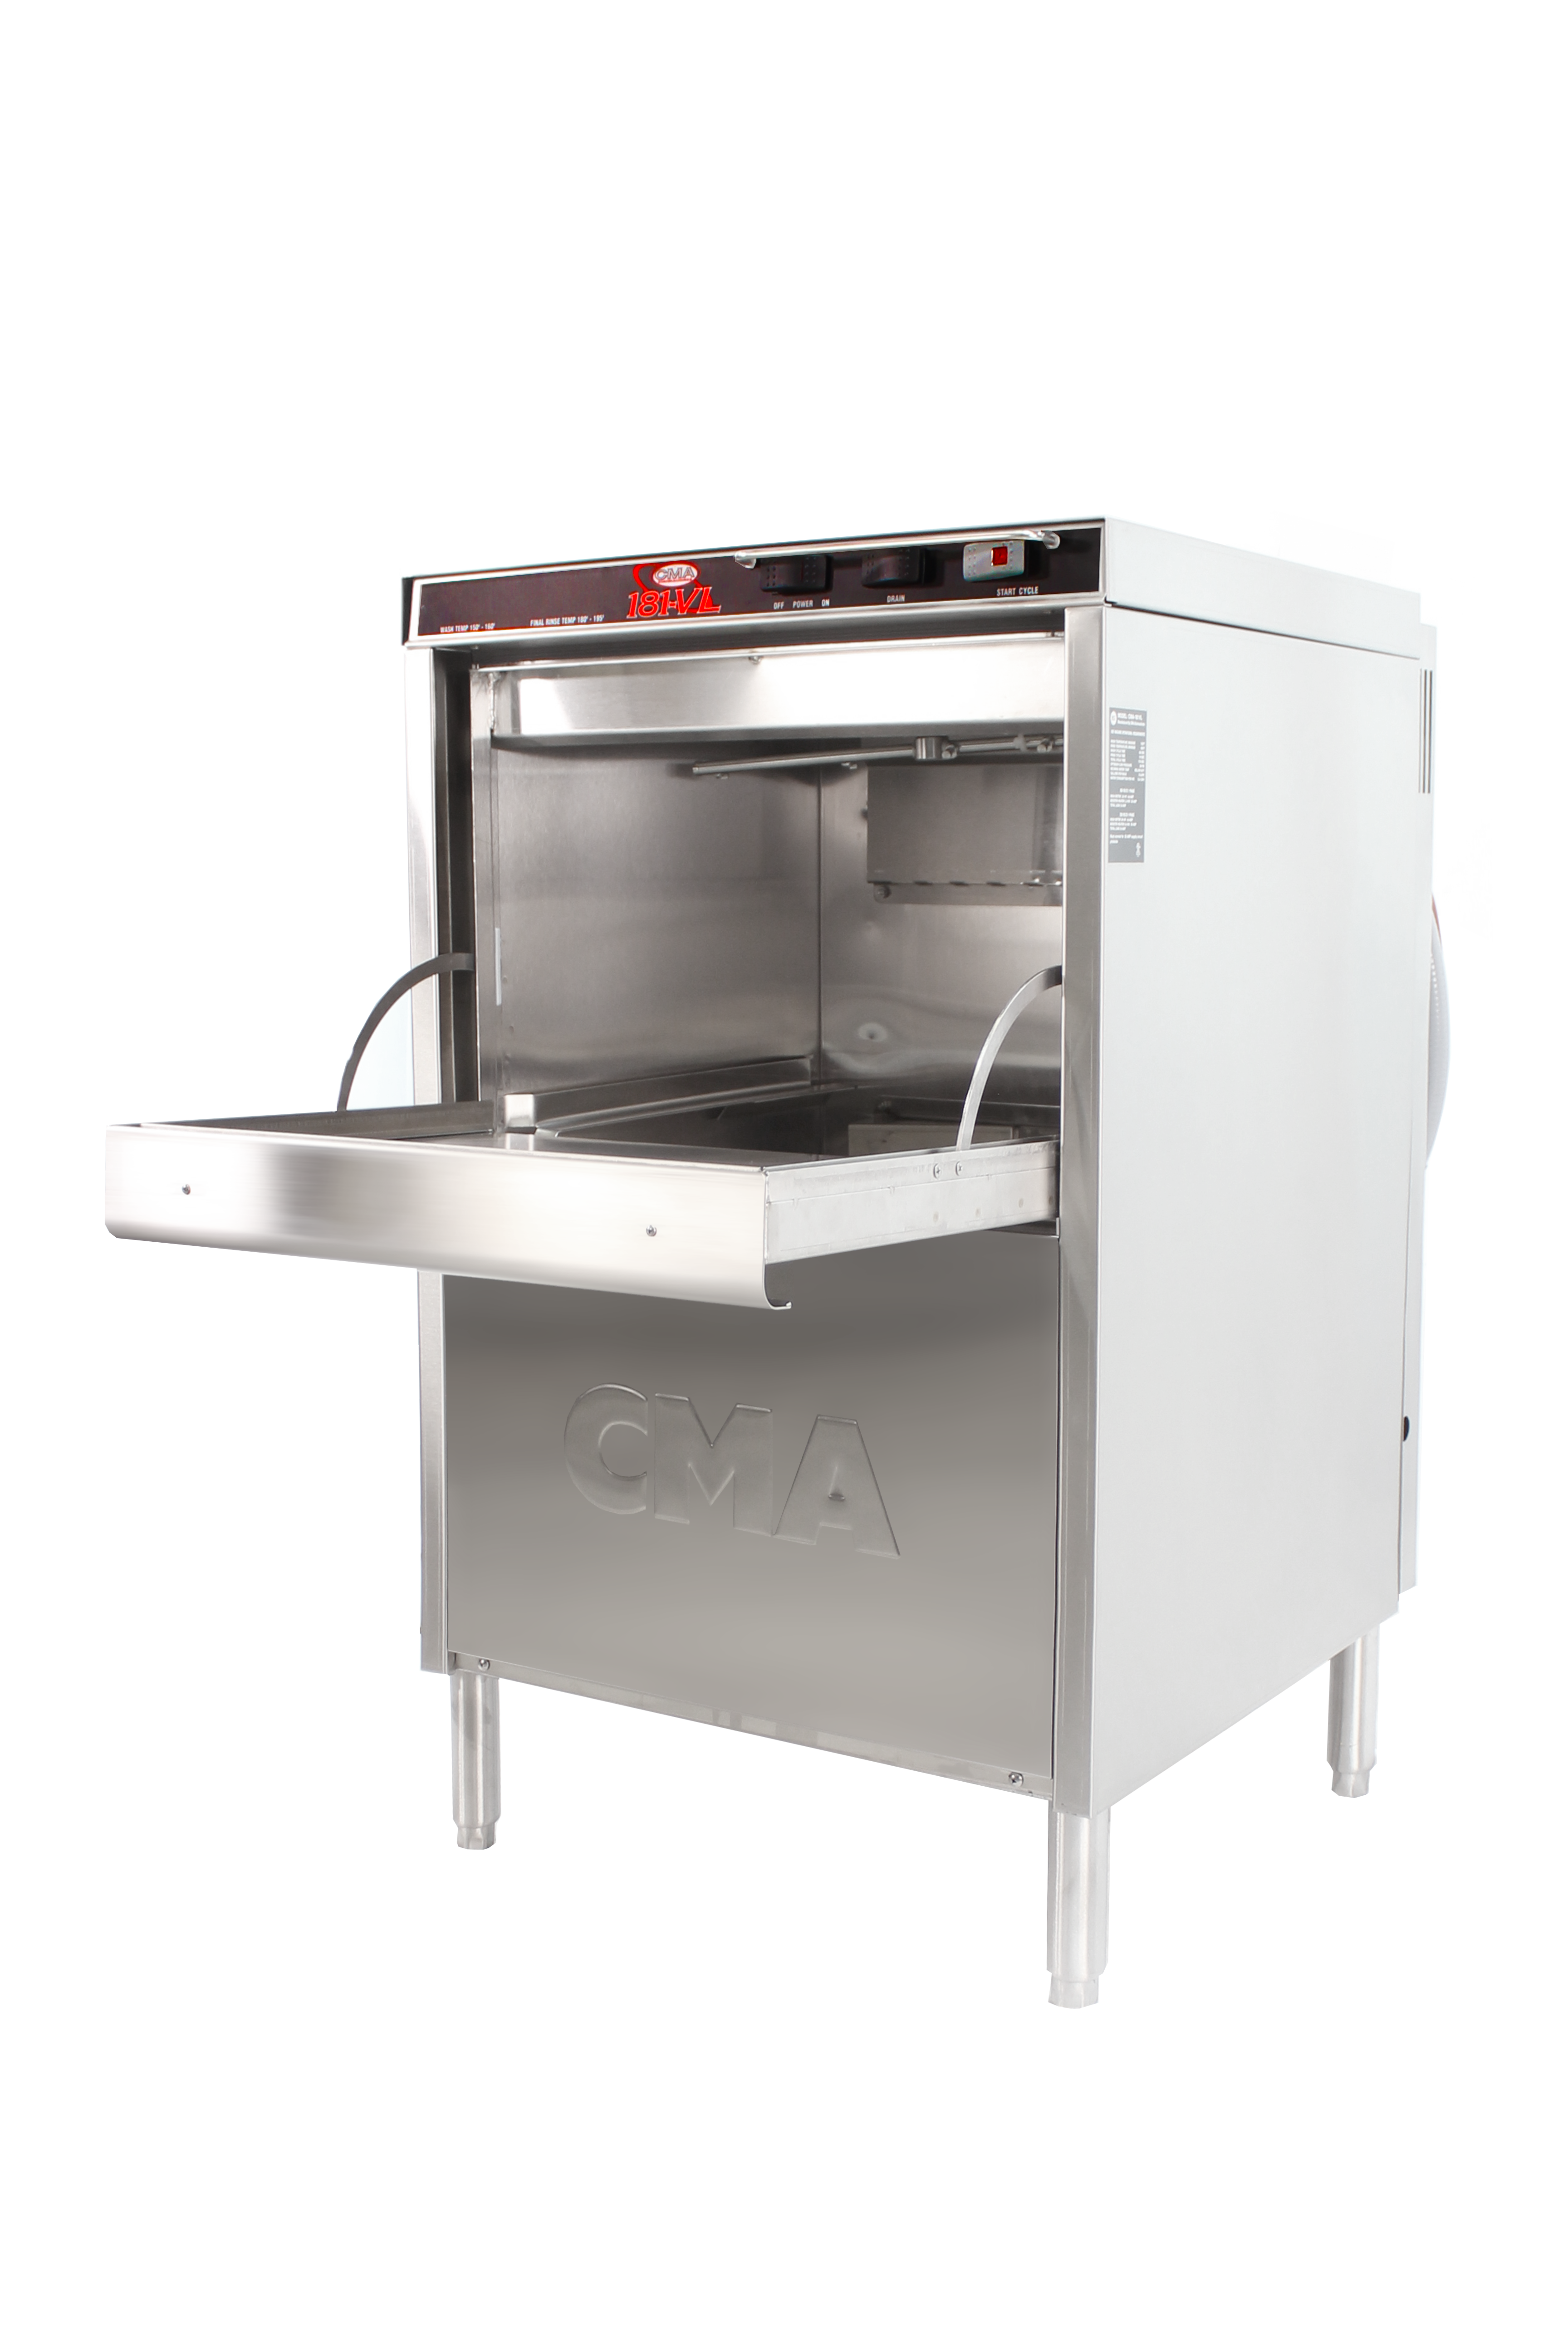 CMA Dishmachines 181 VL glasswasher